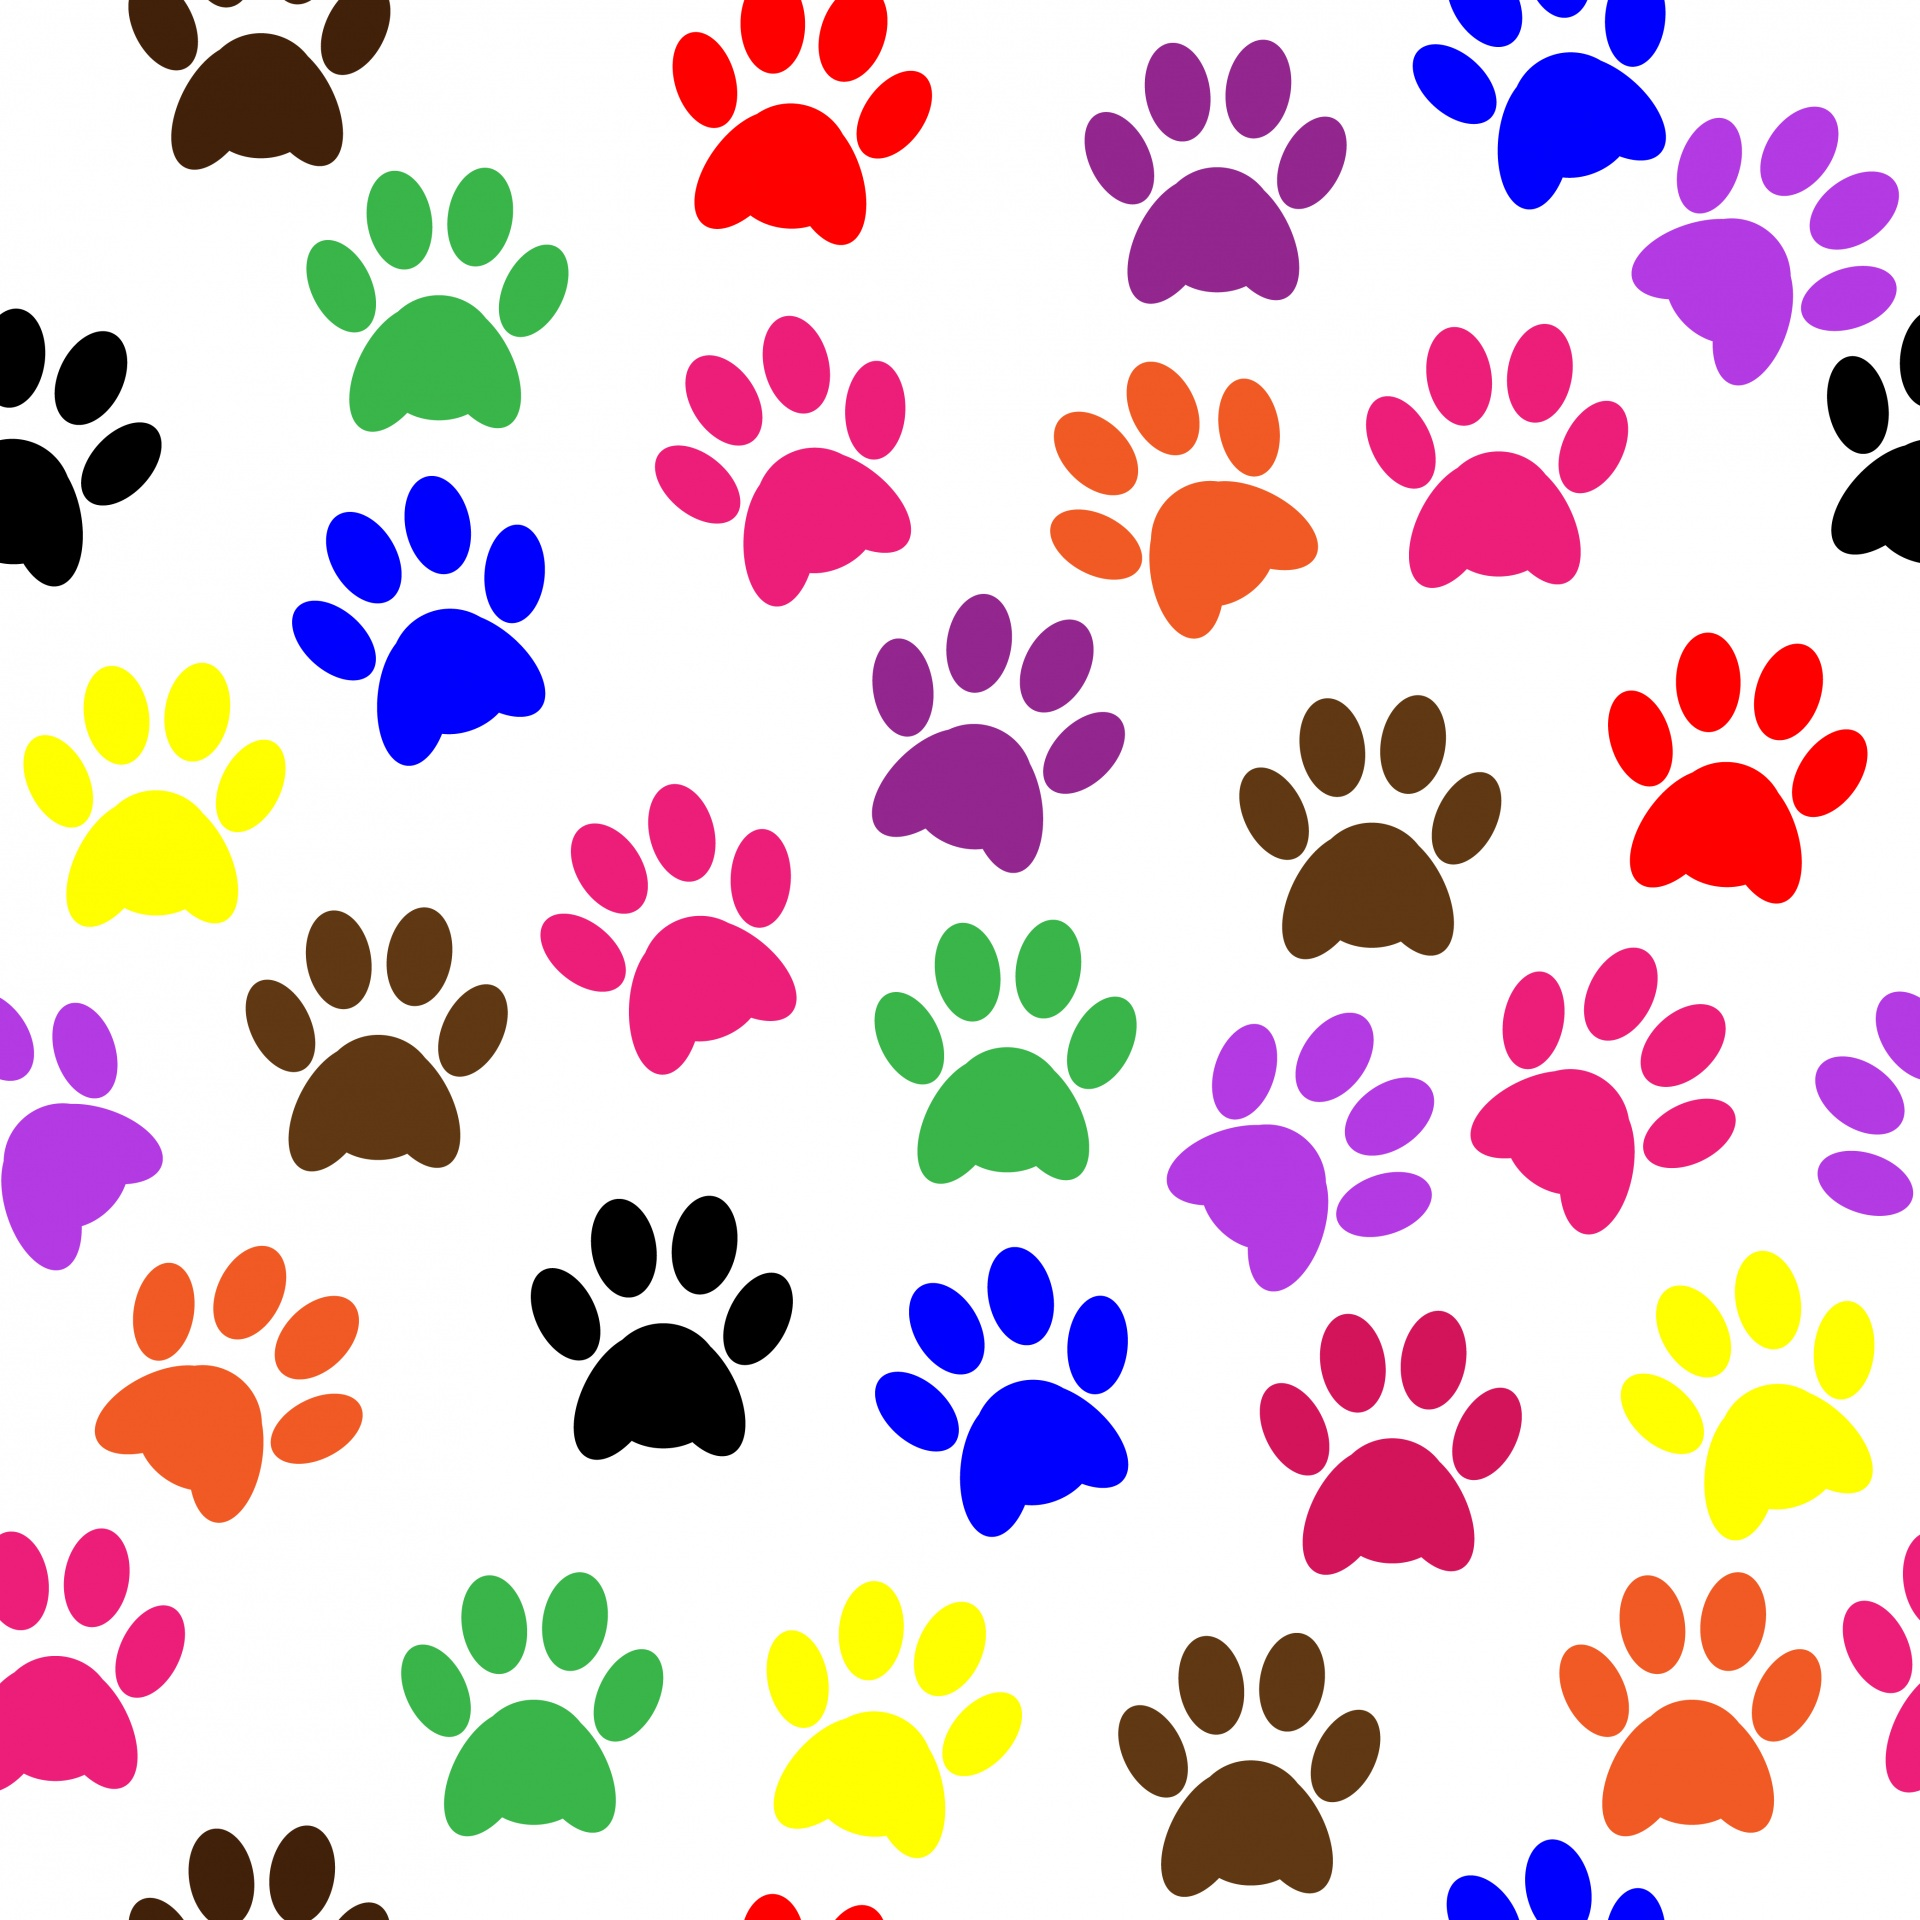 Paw Print Background Powerpoint Backgrounds For Free Powerpoint Templates Upload only your own content. seek gif